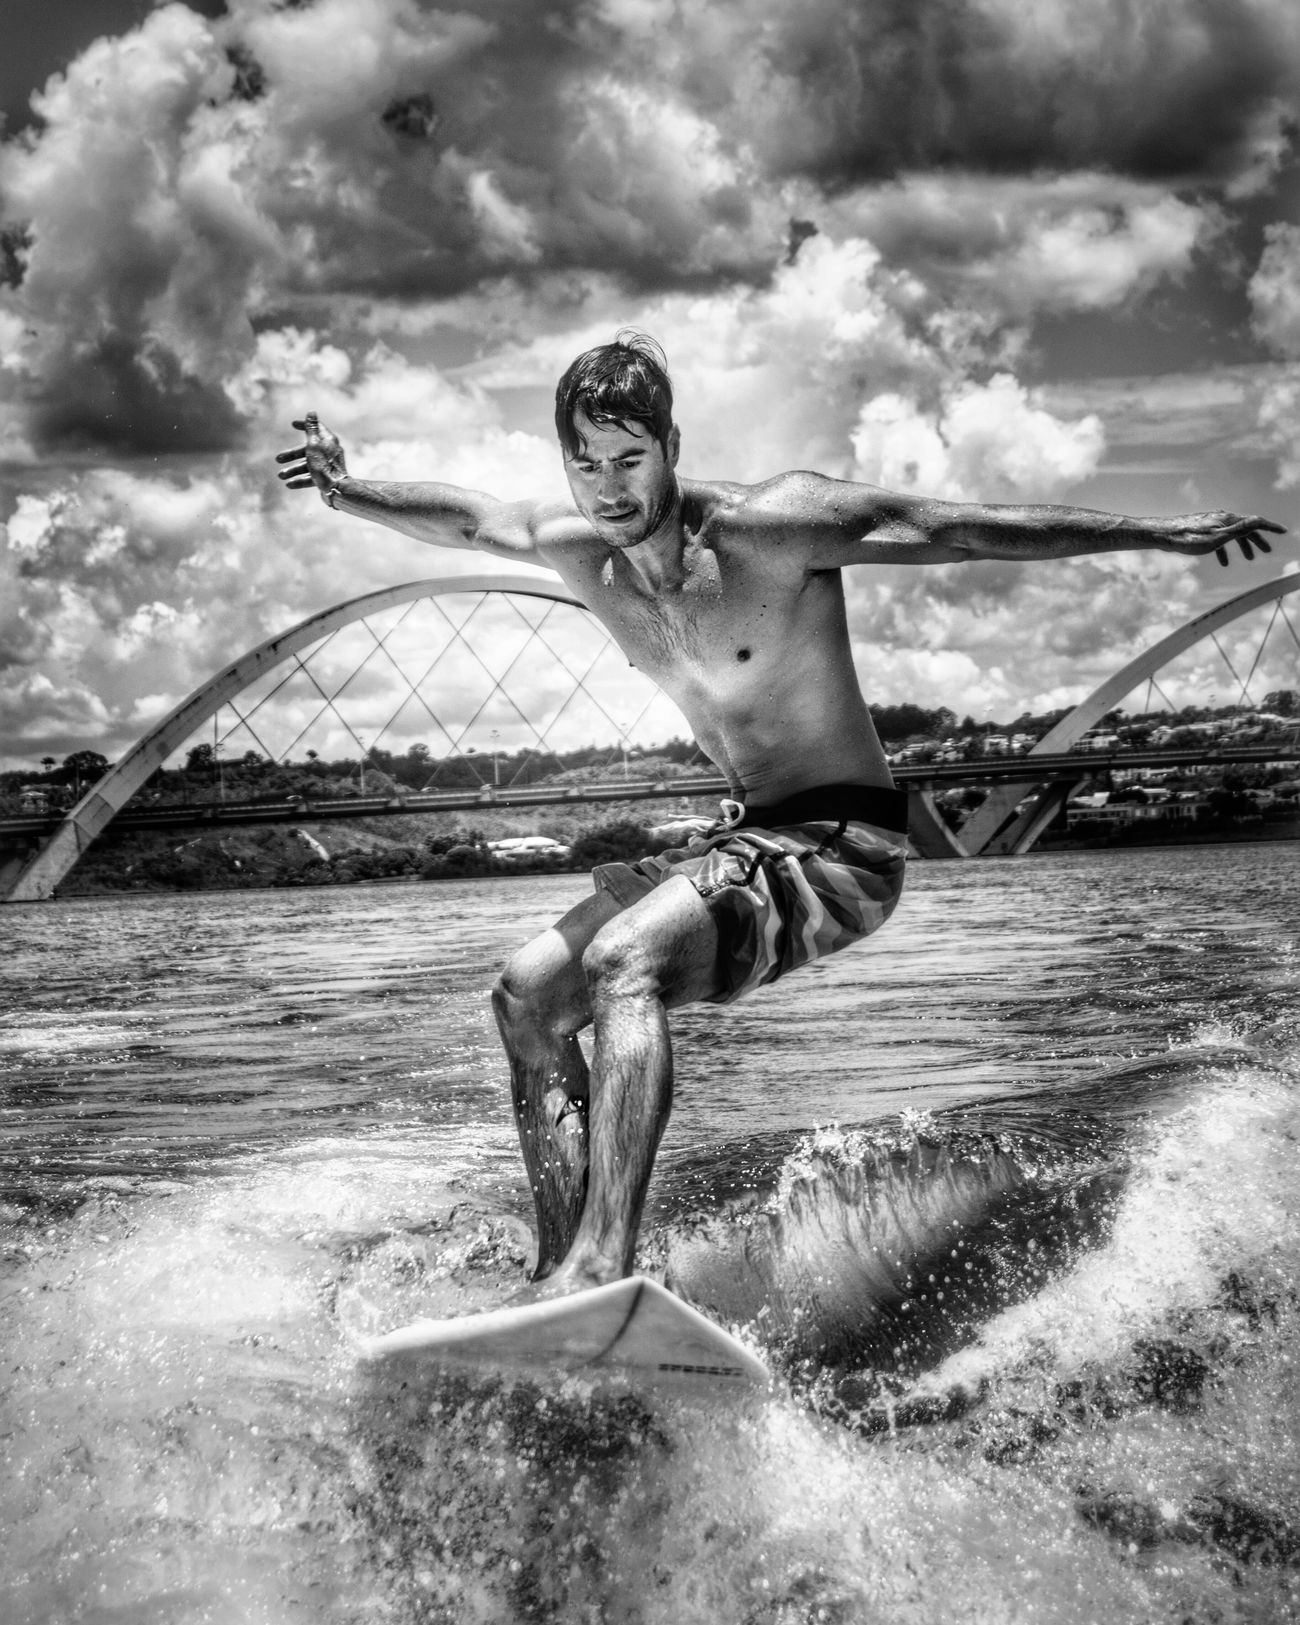 Cloud - Sky Water Cloudscape Outdoors Leisure Activity Sport One Person Sky Brasília Brazil Lago Paranoa Wakesurf Wakesurfing Surf Surfing Wakeboard Wakeboarding Wakeboarding Life  Day Black & White Black And White Black&white Photography Blackandwhite Photography Blackandwhite